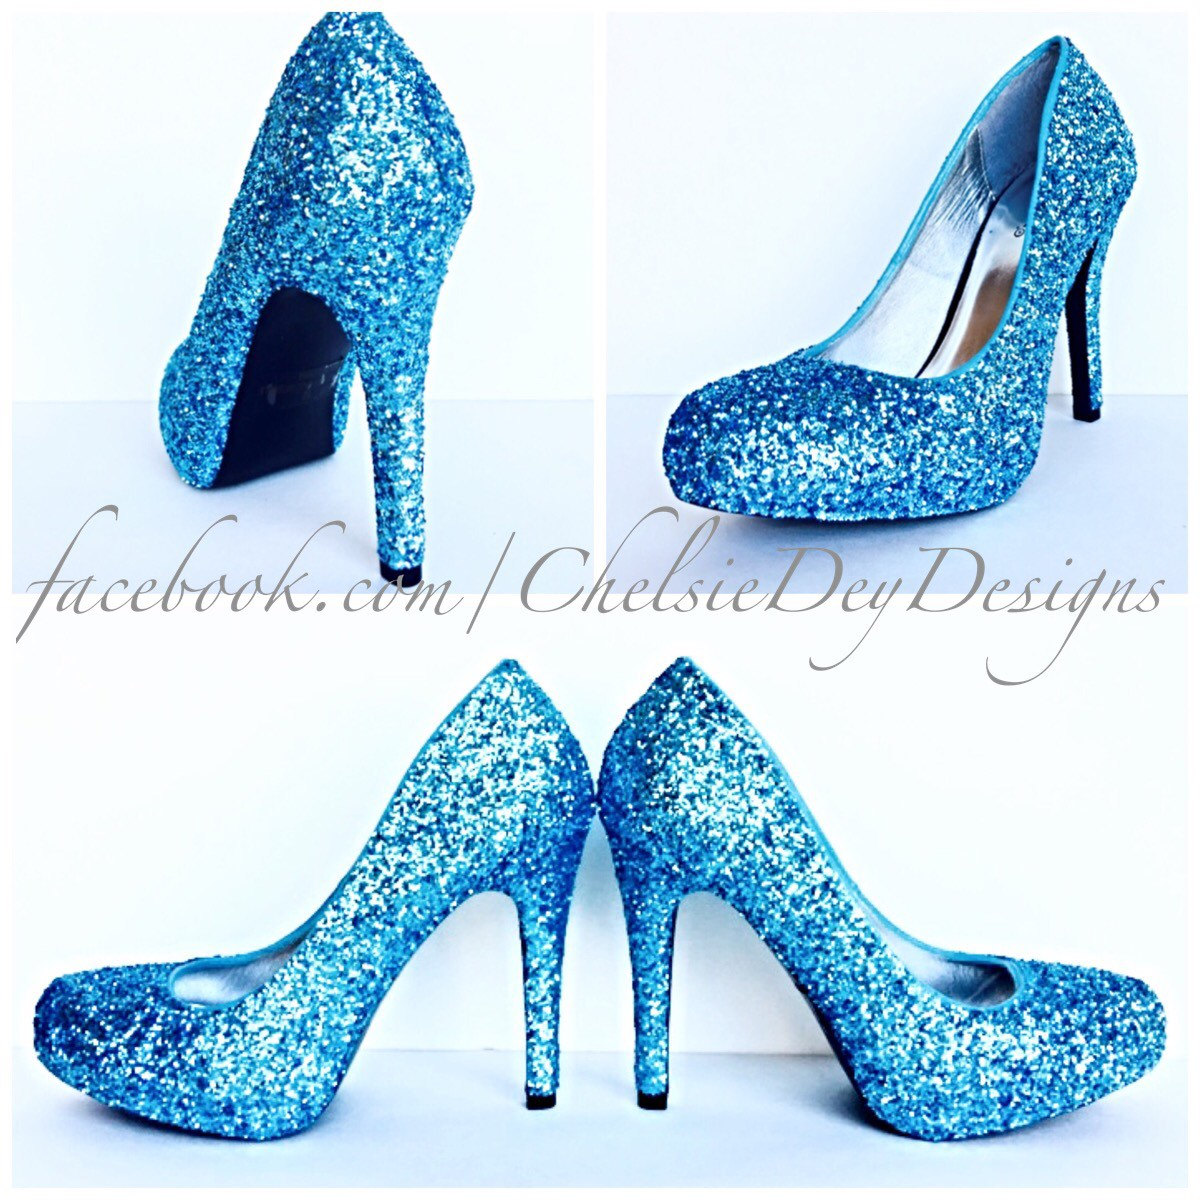 Glitter High Heels Light Blue Pumps Aqua Turquoise Ice Calypso Black Satin Bows Blue Wedding Shoes Sparkly Prom Heels Sold By Chelsie Dey